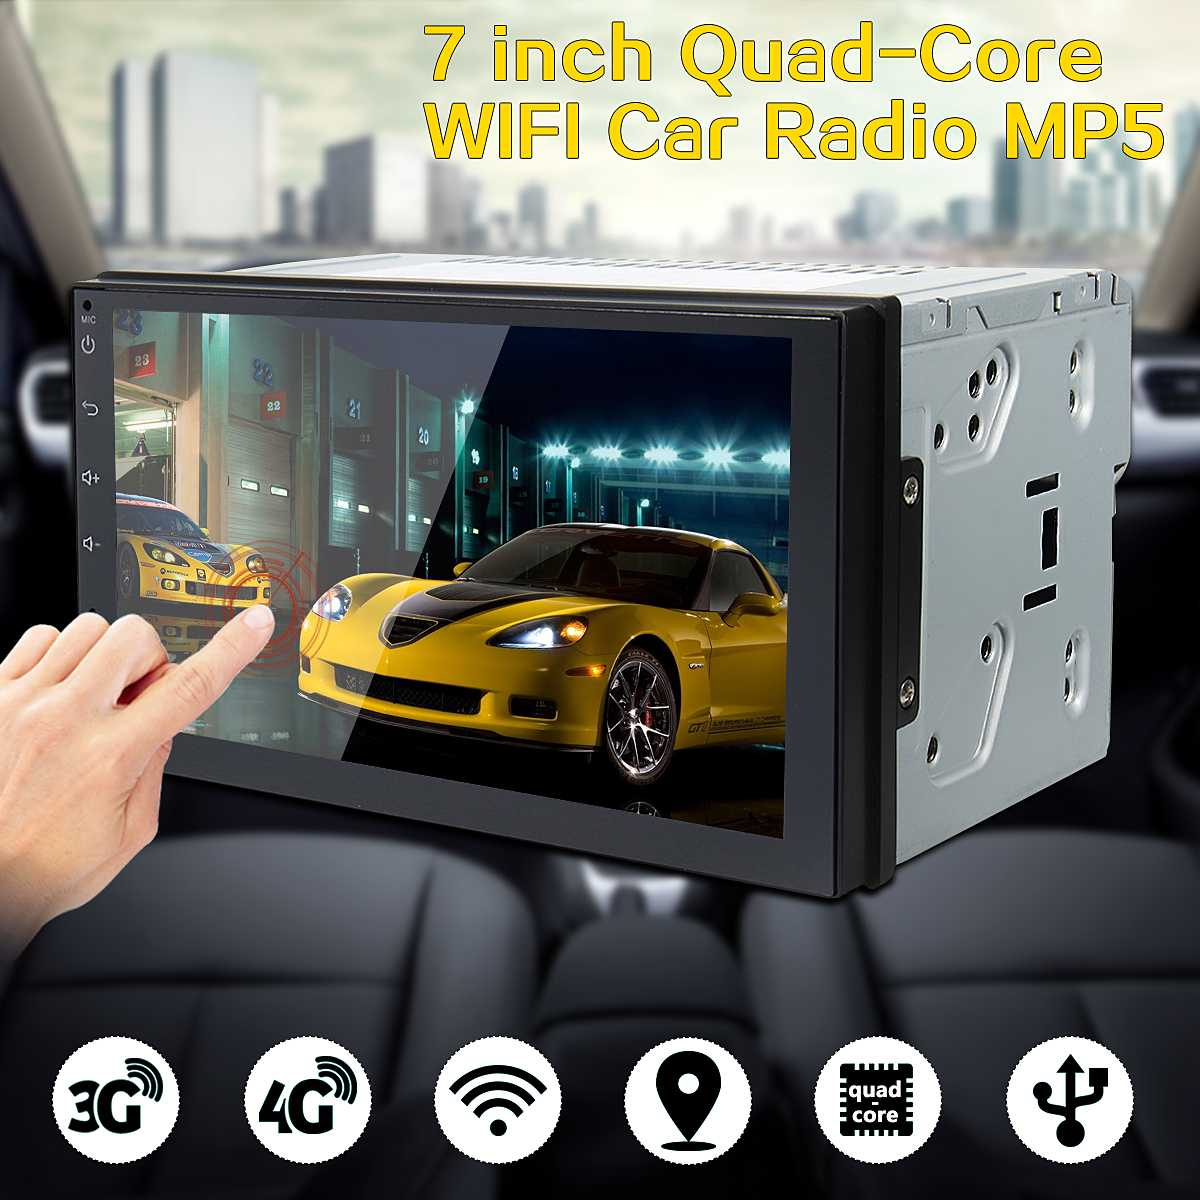 7 Inch Android 6.0 Double 2Din Quad Core Car Radio Stereo MP5 Player GPS 3G 4G WiFi Car Multimedia Player Audio Player